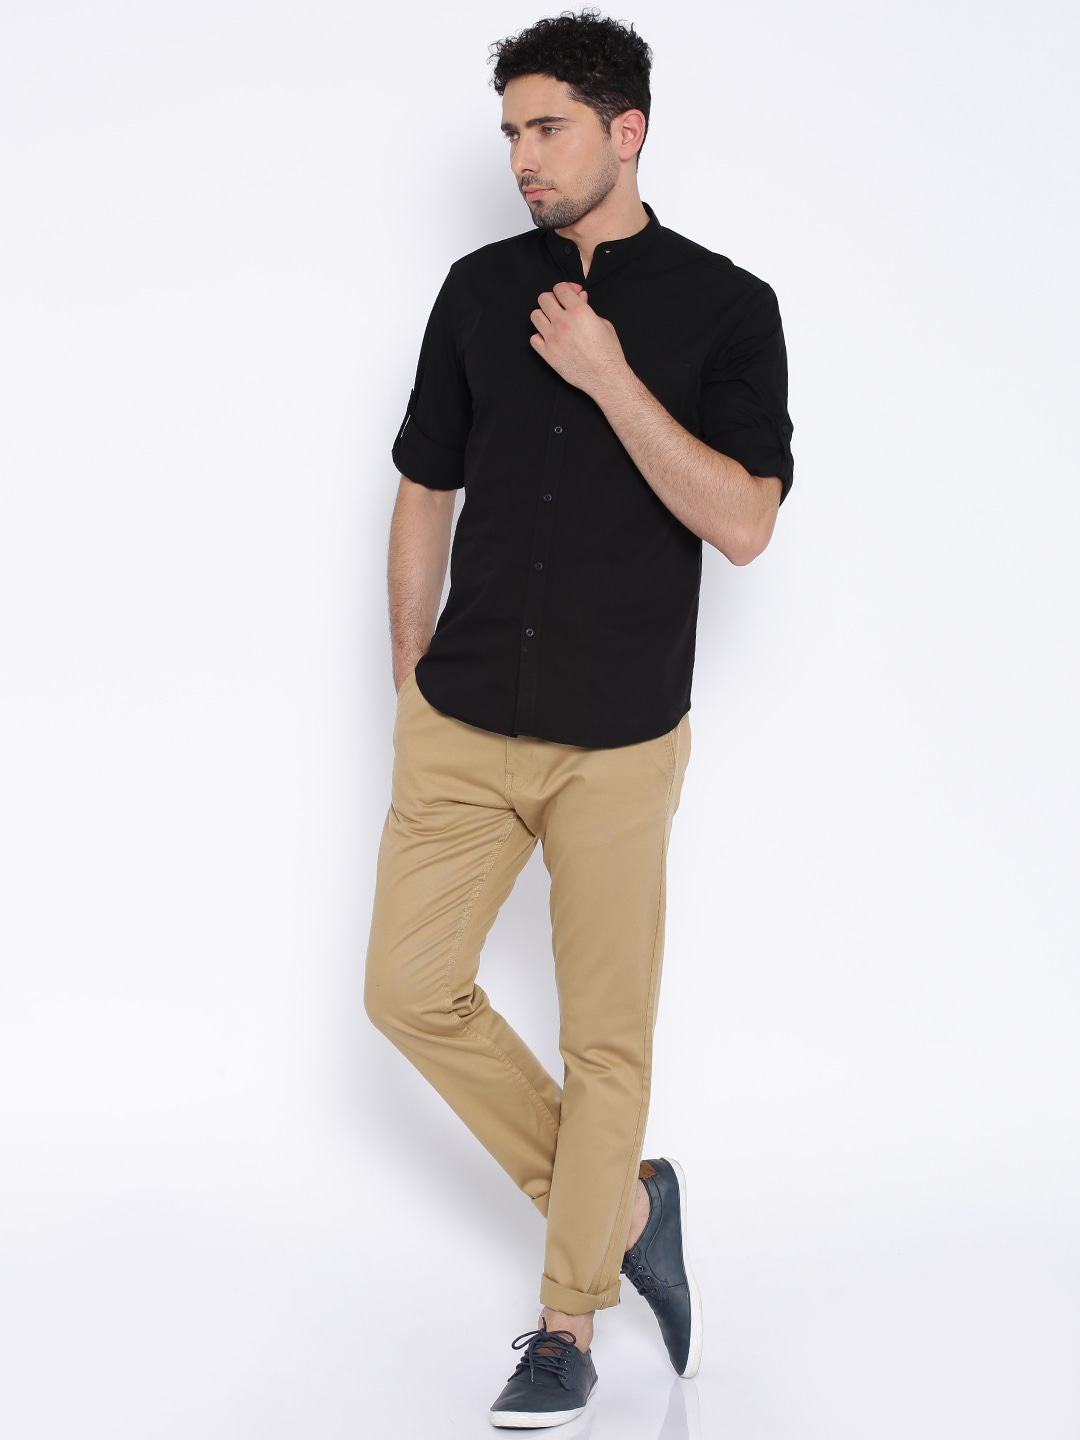 Black shirt brown shoes khaki pants style guru fashion Black shirt blue jeans